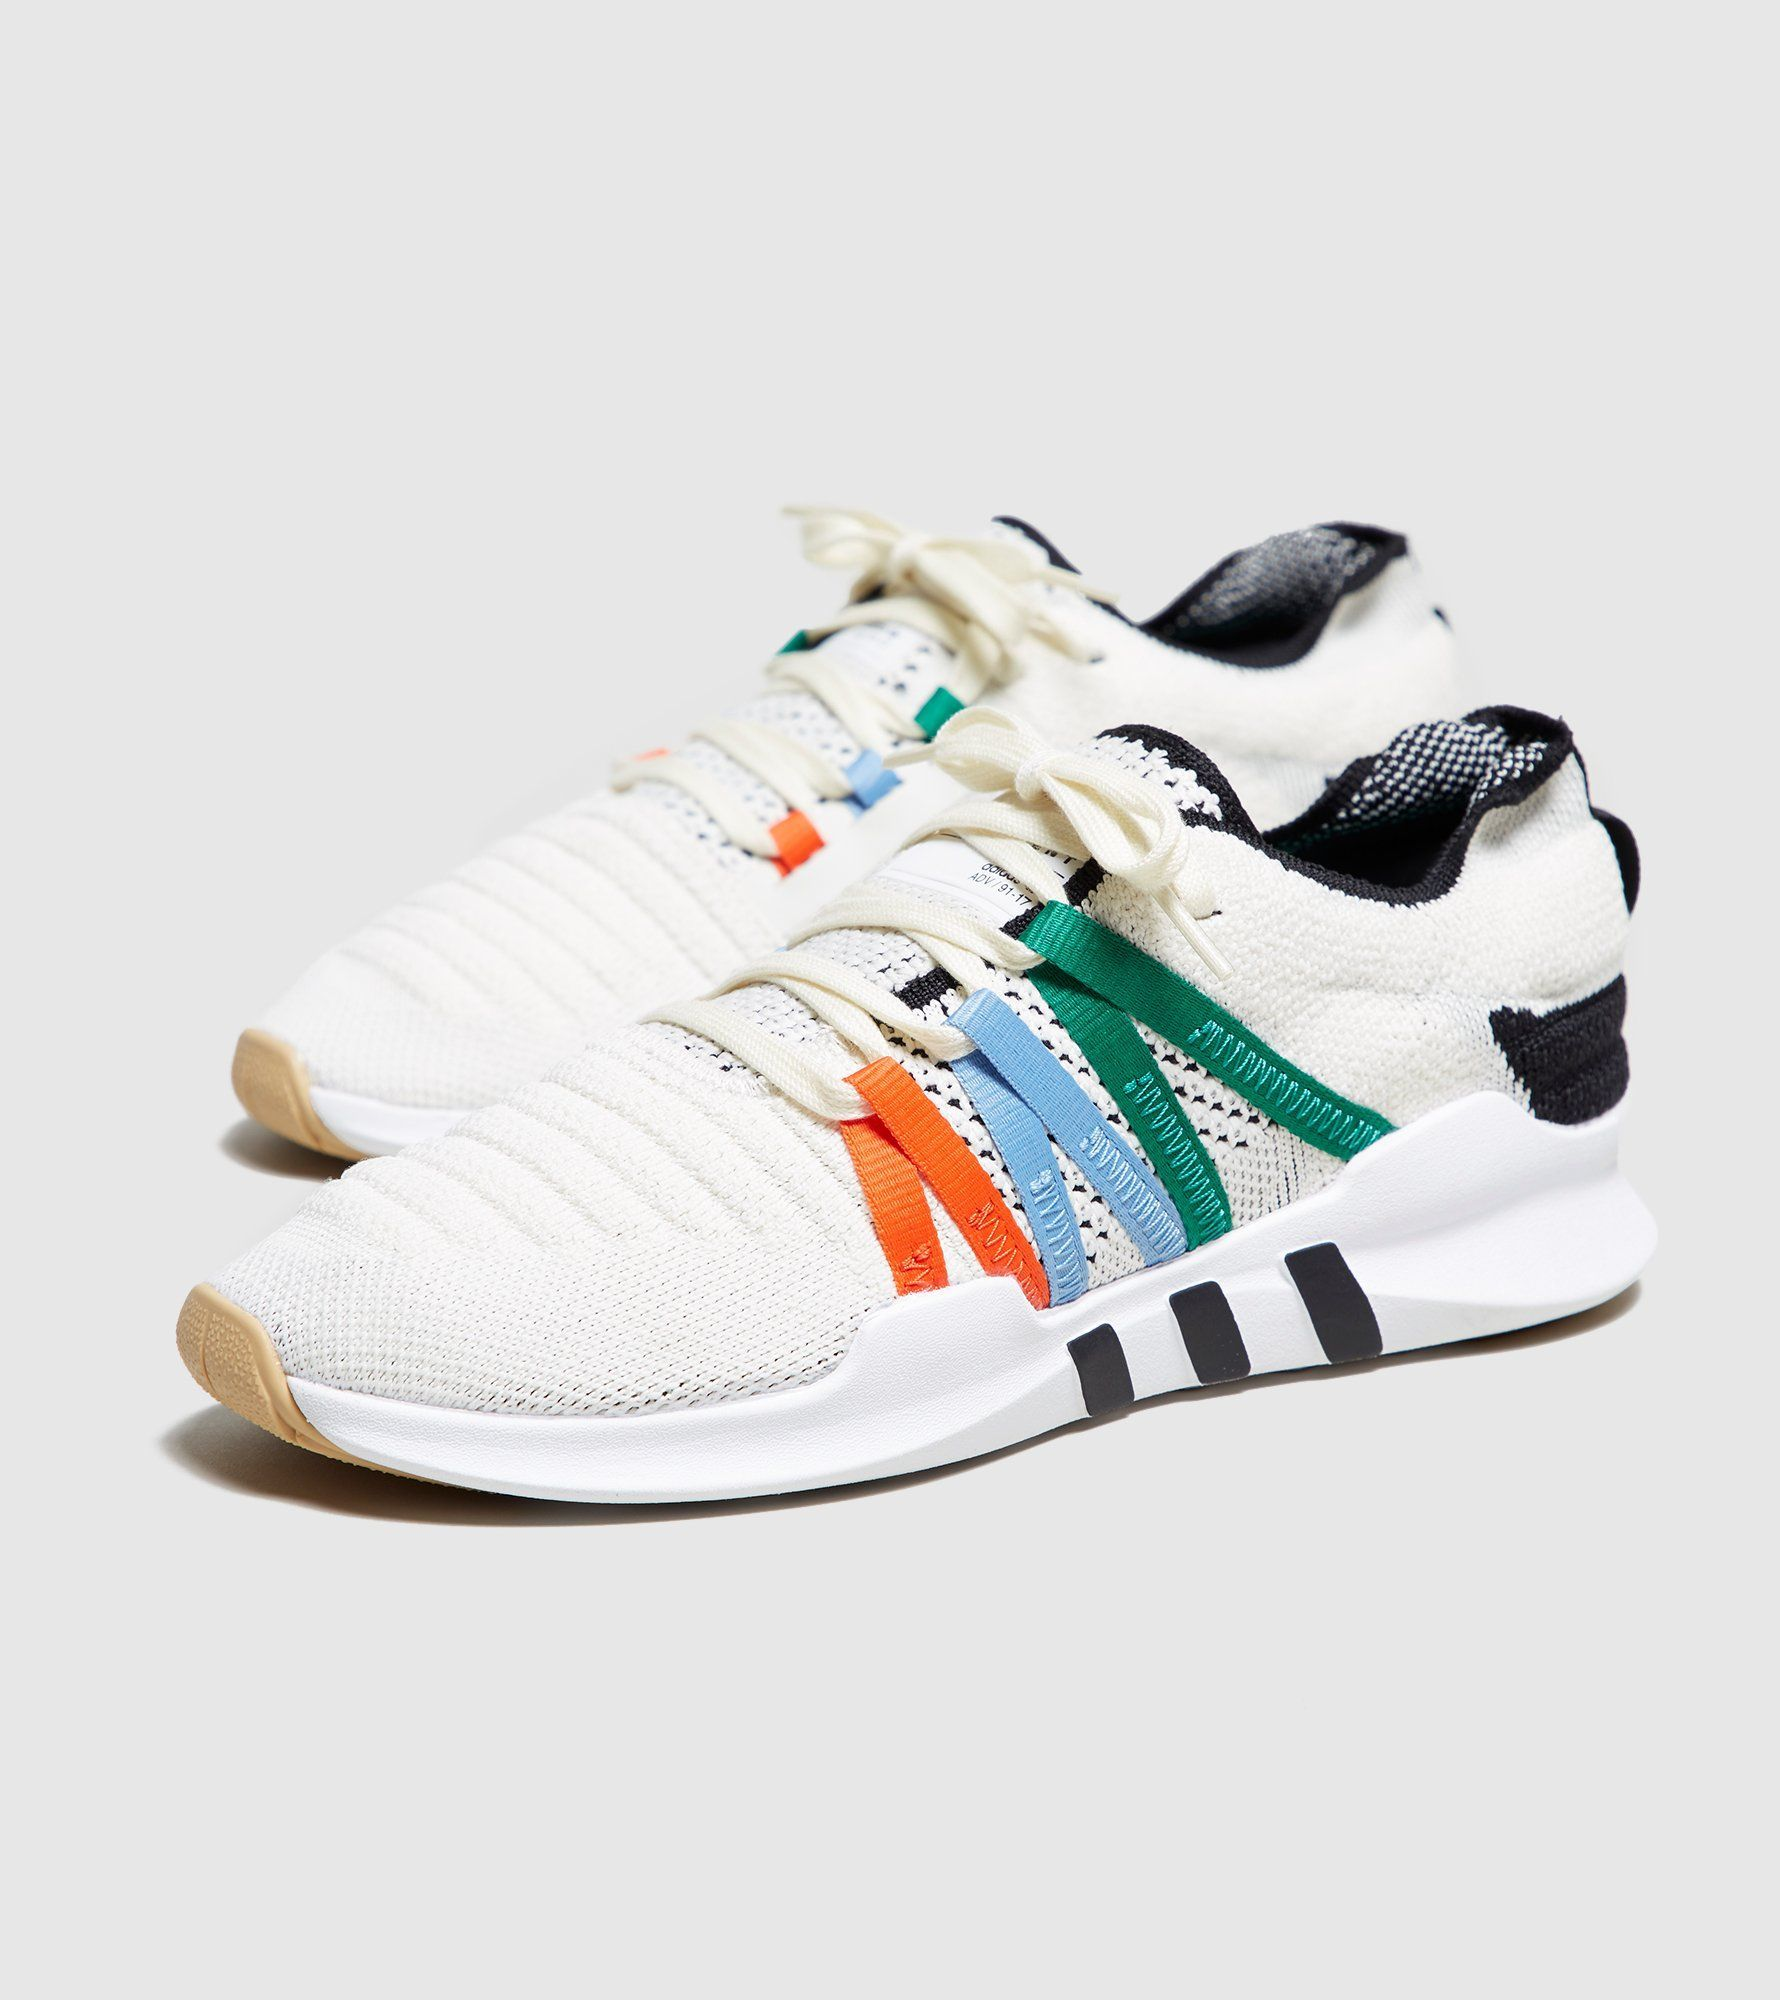 adidas eqt racing trainers